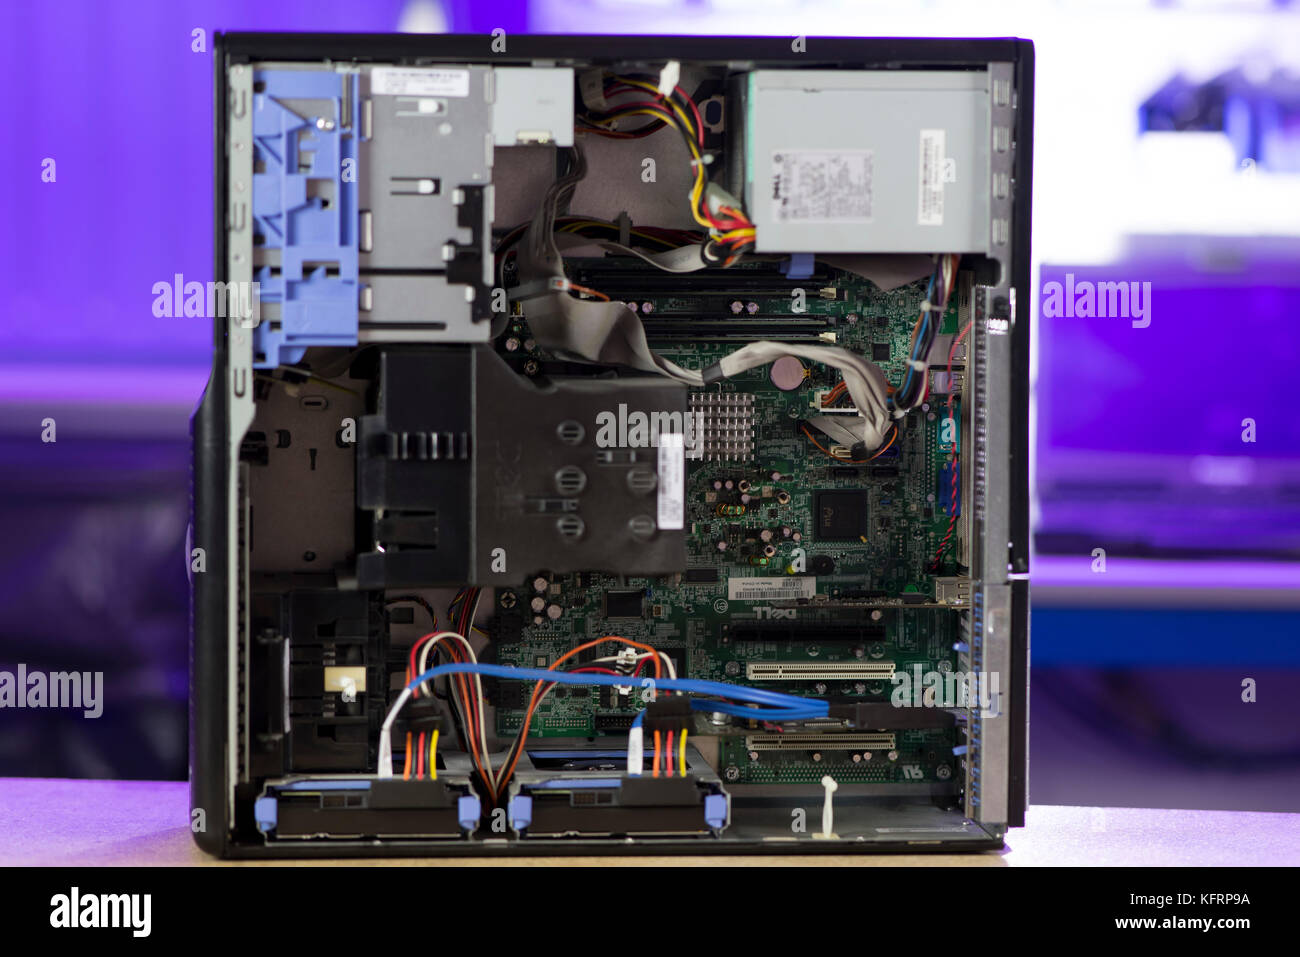 A PC personal computer tower showing the inside and internal areas including the motherboard, computer chips and - Stock Image